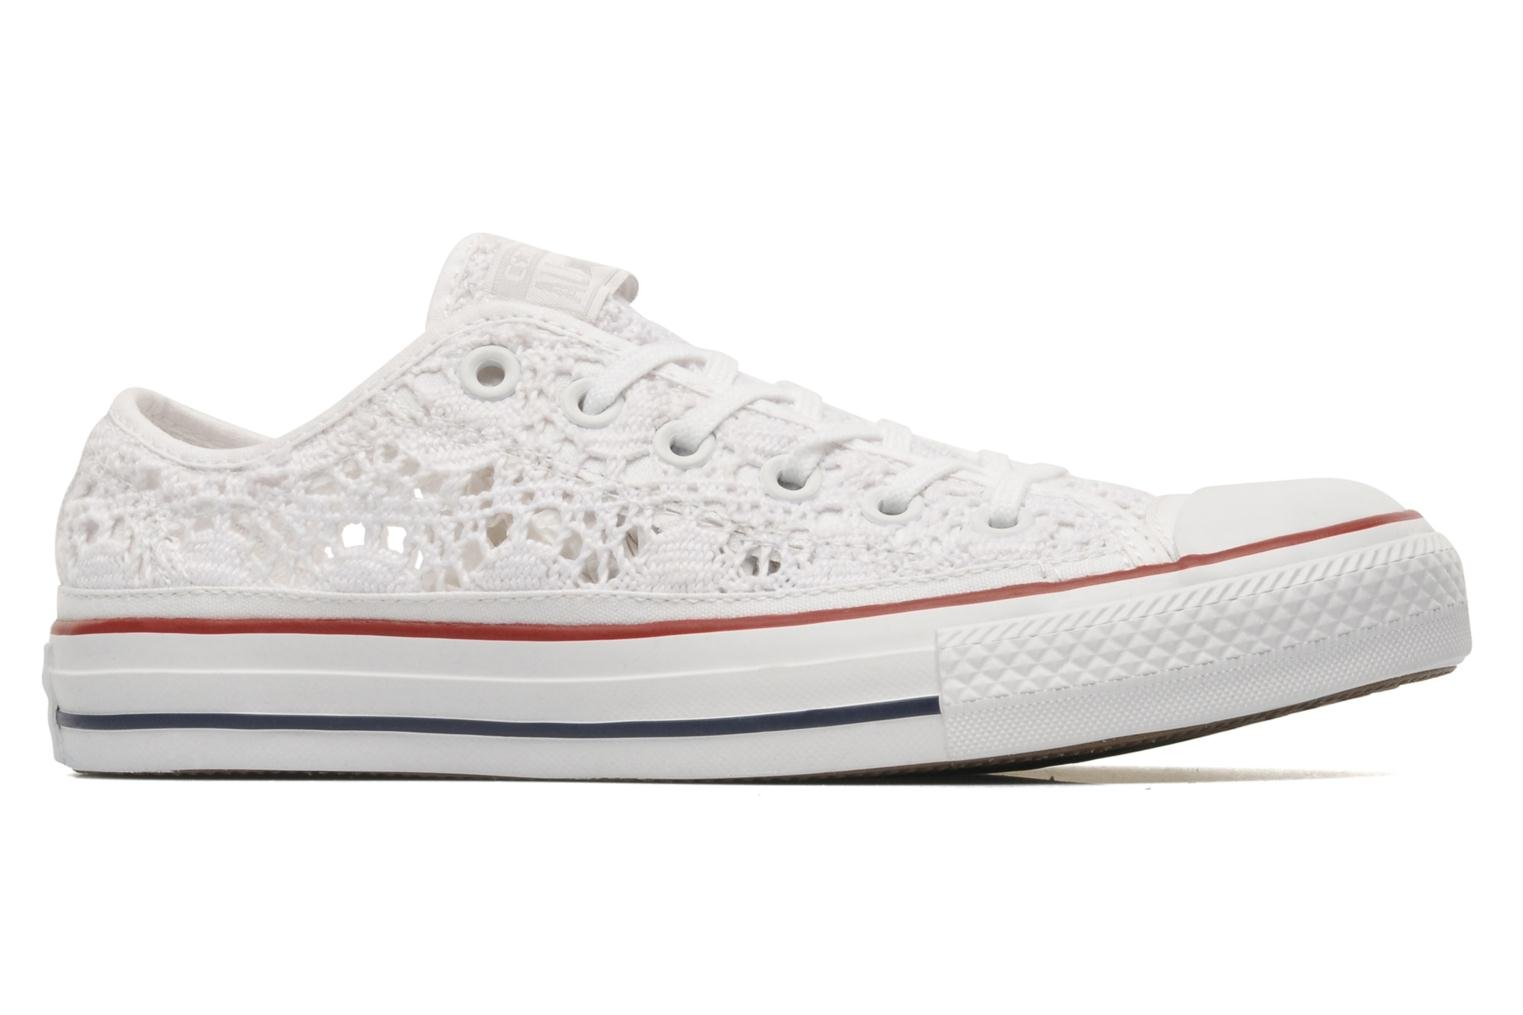 converse chuck taylor all star crochet ox w trainers in white at 212833. Black Bedroom Furniture Sets. Home Design Ideas